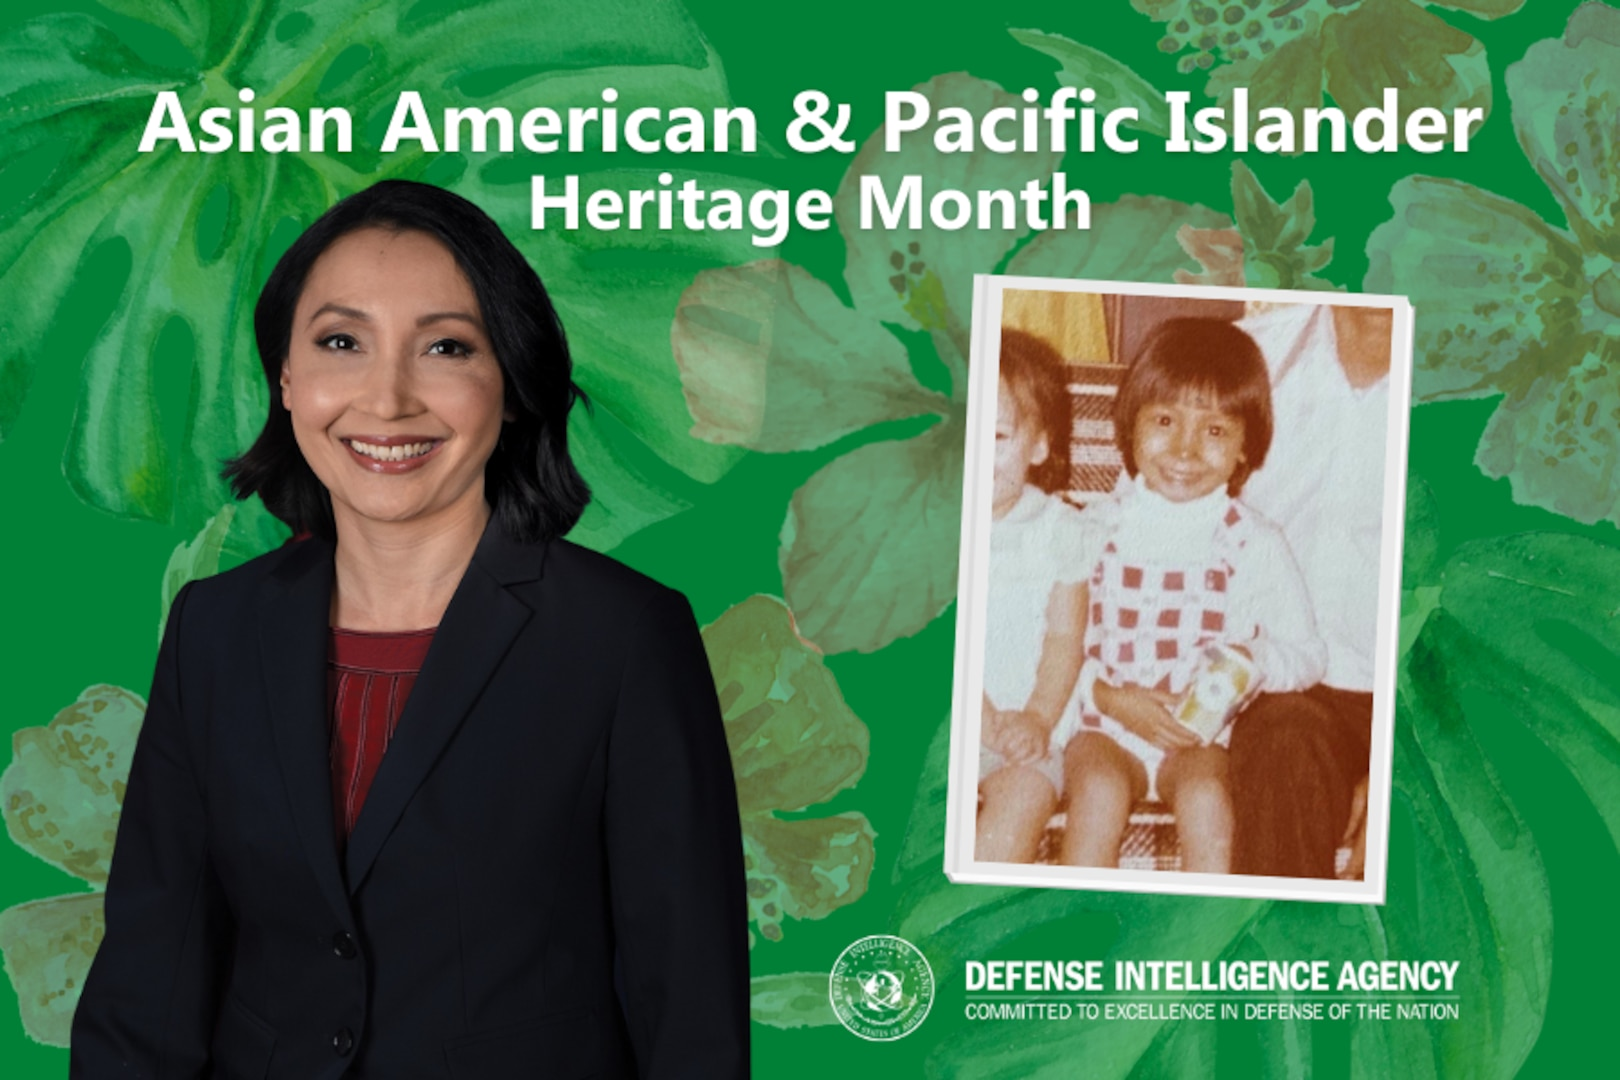 Van Hendrey, who manages DIA's Machine-assisted Analytic Rapid-repository System program, immigrated as a child to the U.S. from Vietnam. (Photos courtesy of Van Hendrey.Graphic by DIA Public Affairs)